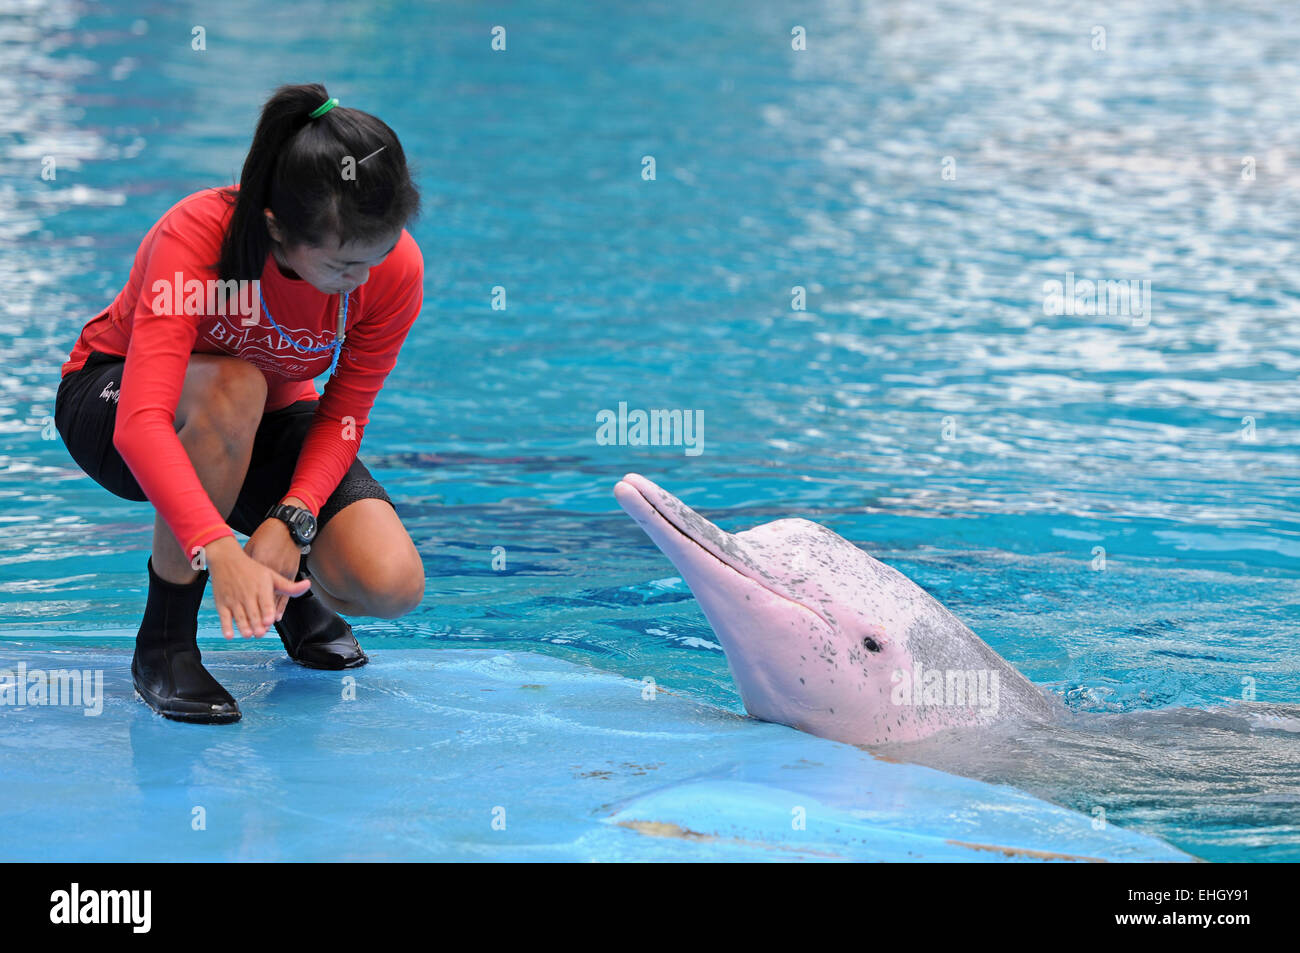 Rosafarbene Delphine / Pink dolphins - Stock Image